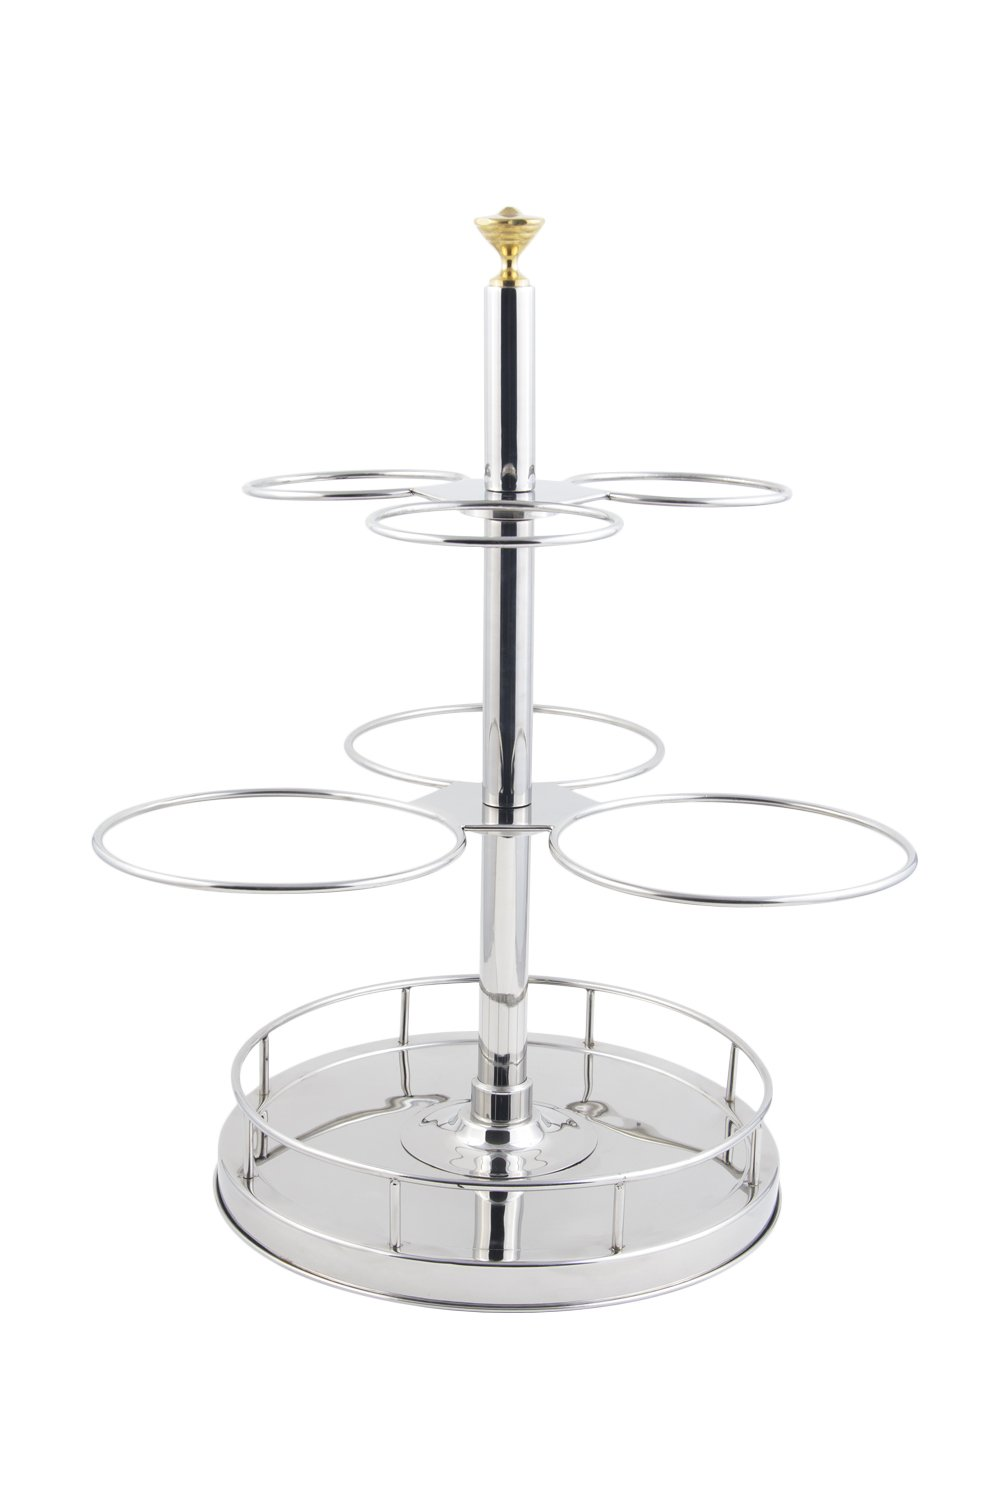 Bon Chef 61100 Stainless Steel Revolving Condiment Holder, 18'' Length x 18'' Width x 26-3/4'' Height